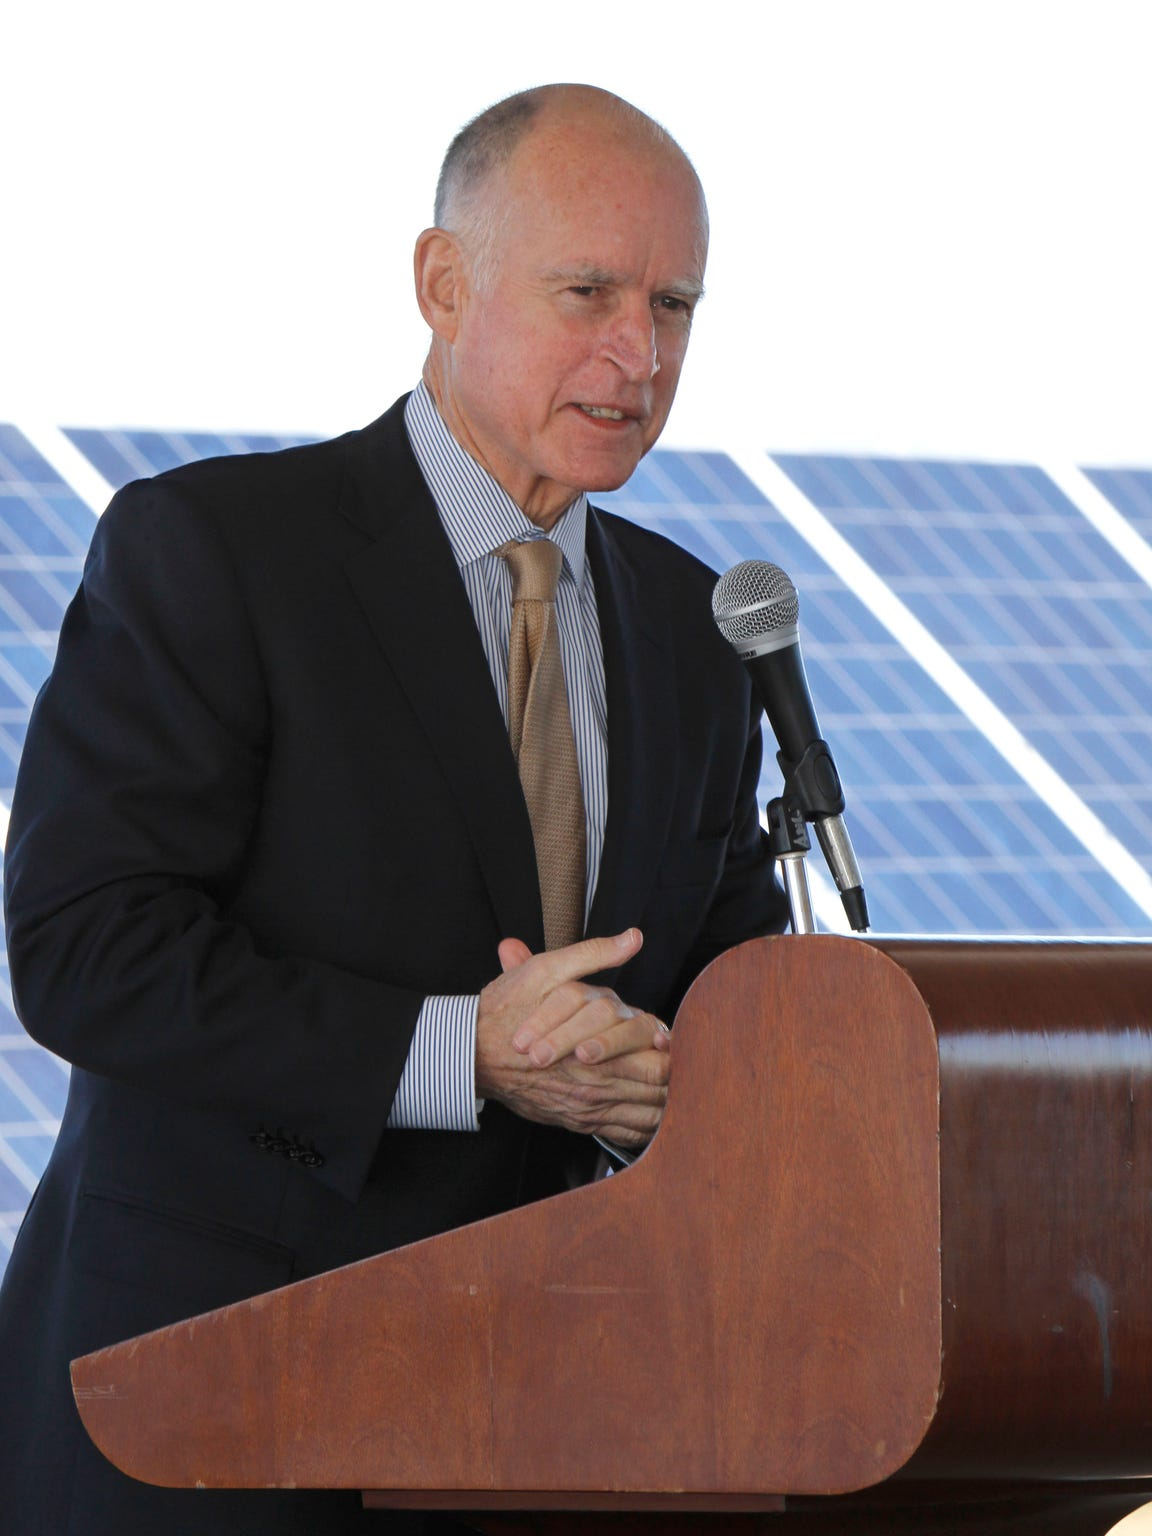 Gov. Jerry Brown speaks at a Recurrent Energy solar farm in Elk Grove, California on Jan. 13, 2012.